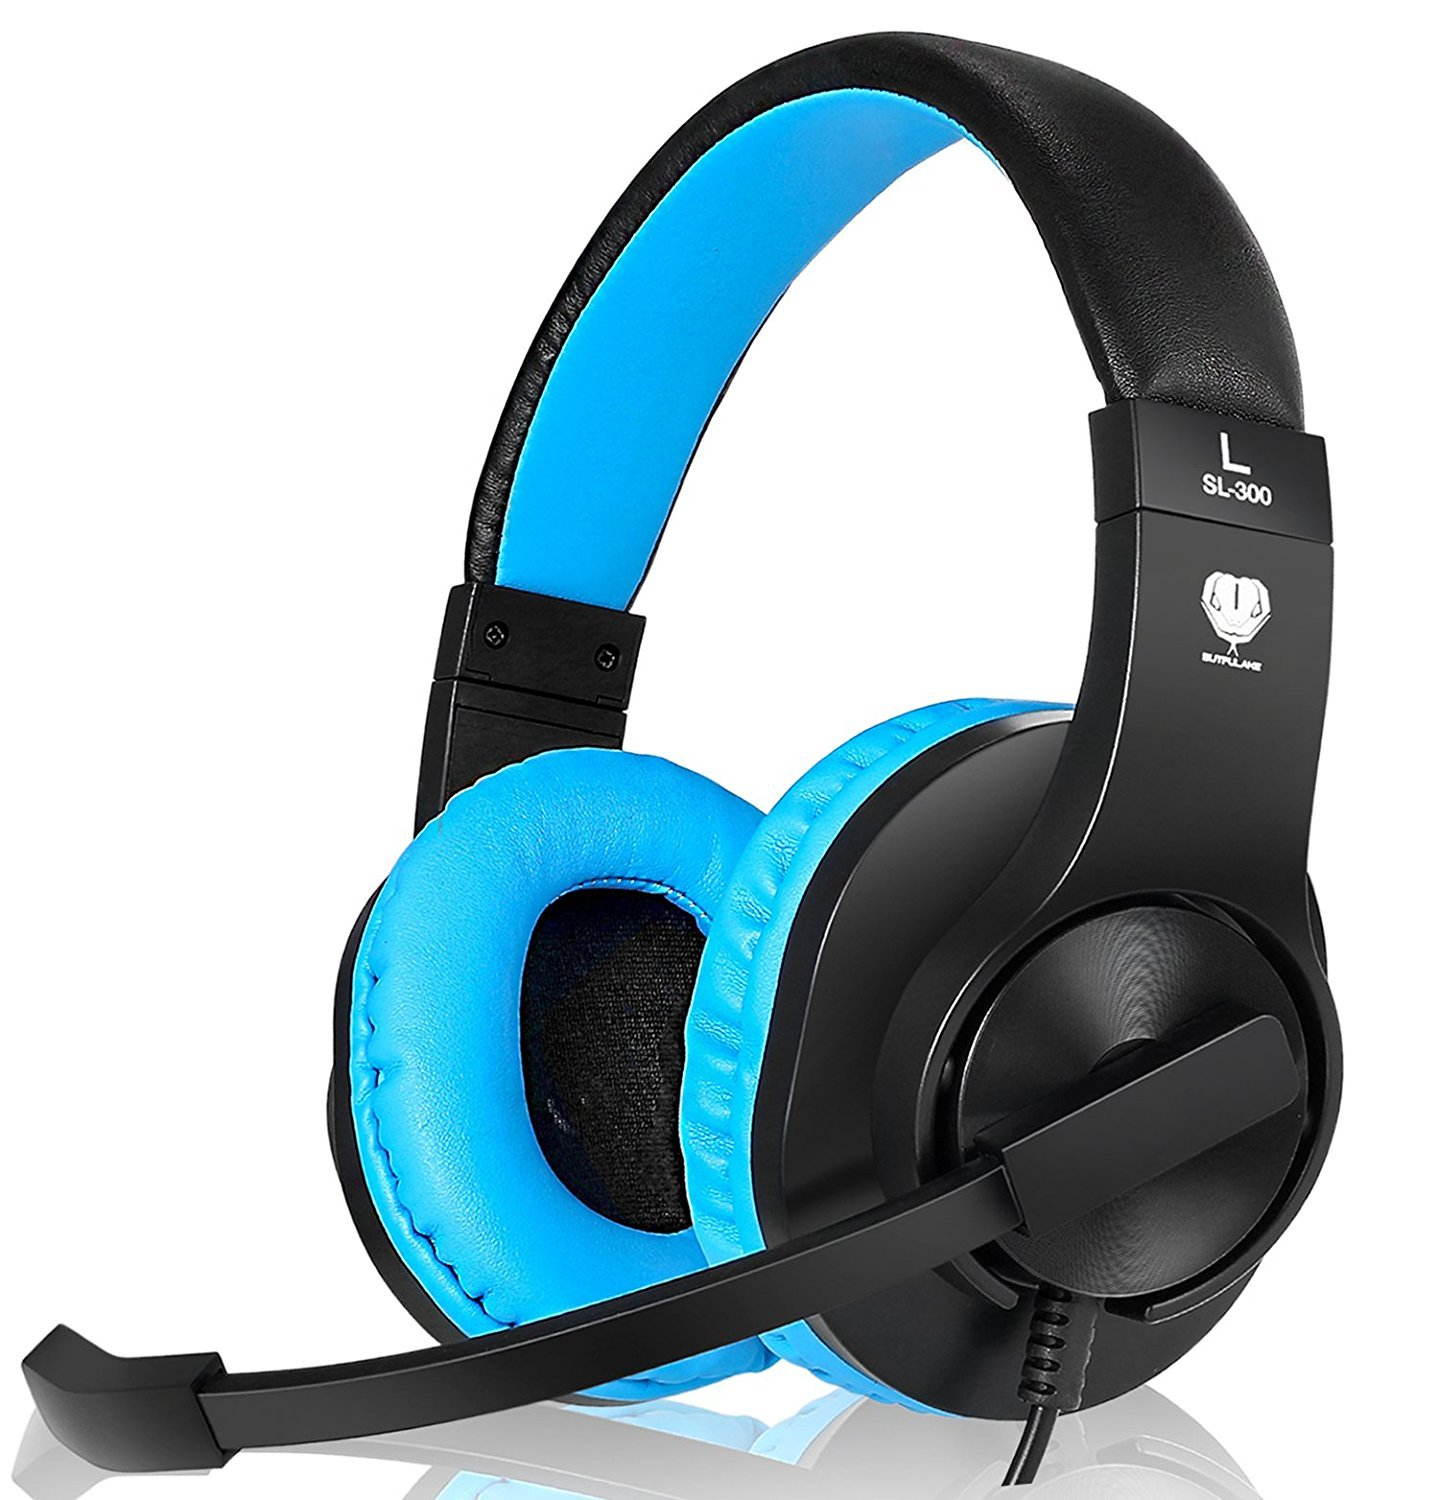 1fda245cb8e Get Quotations · Headset Gaming for PS4 ,Xbox One Gaming Headset ,Wired  Noise Isolation, Over-